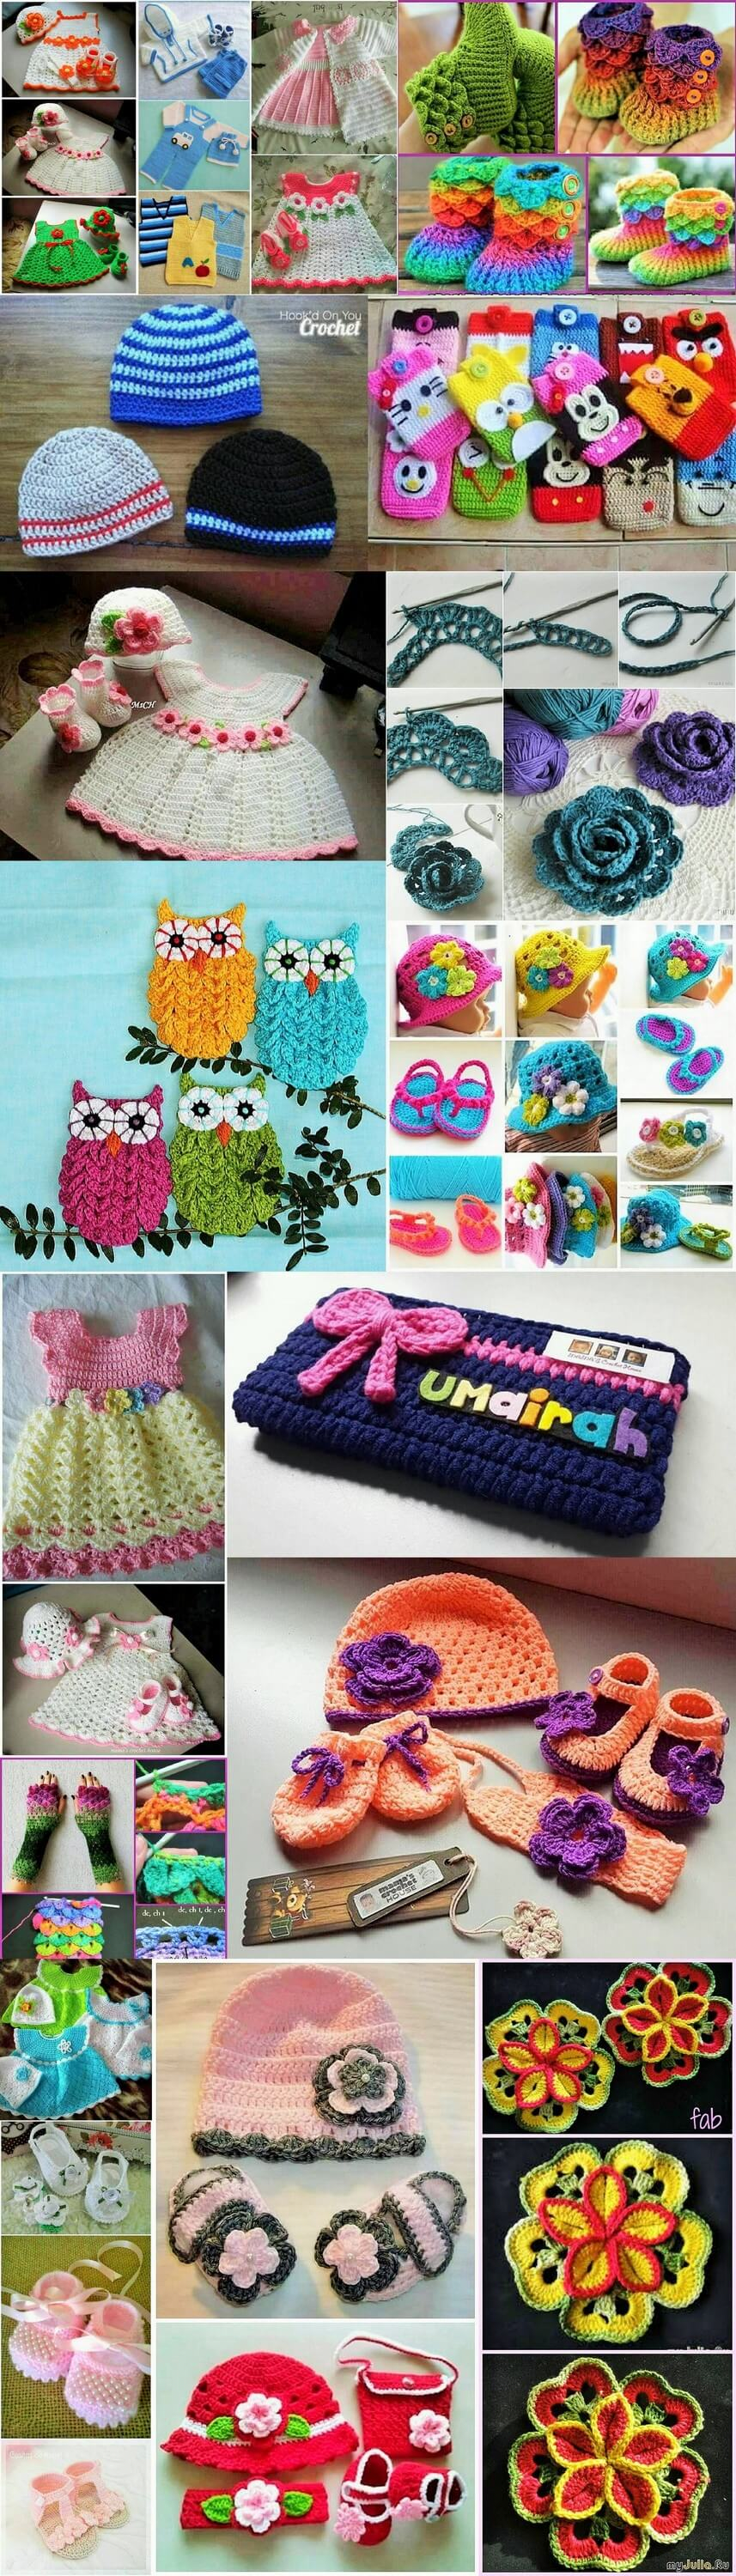 diy-crochet-Hand made-Accessories-Ideas